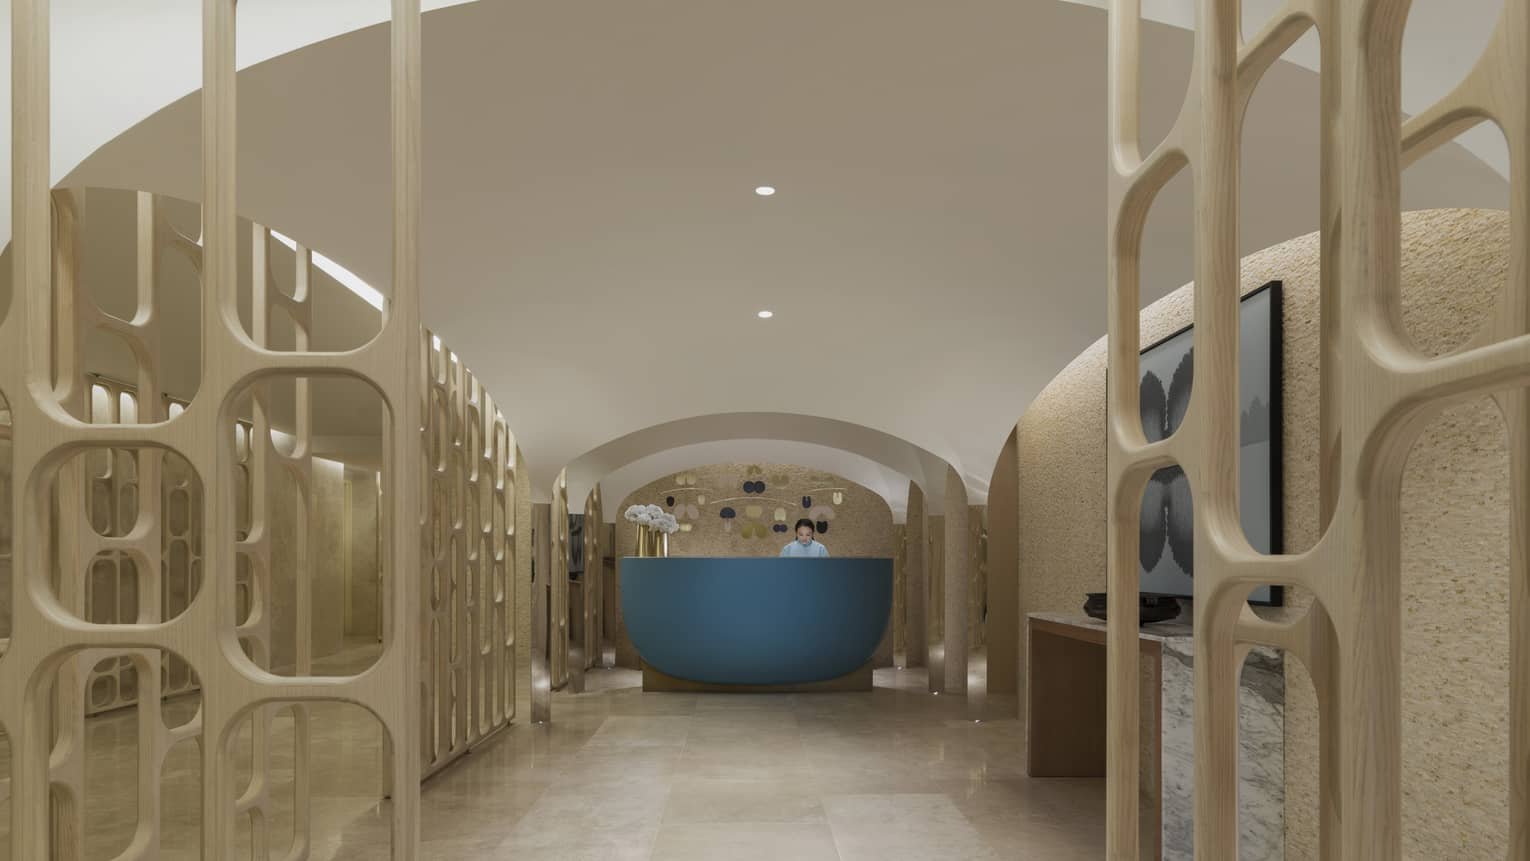 The spa entrance is marked by a blue desk sits on a marble floor